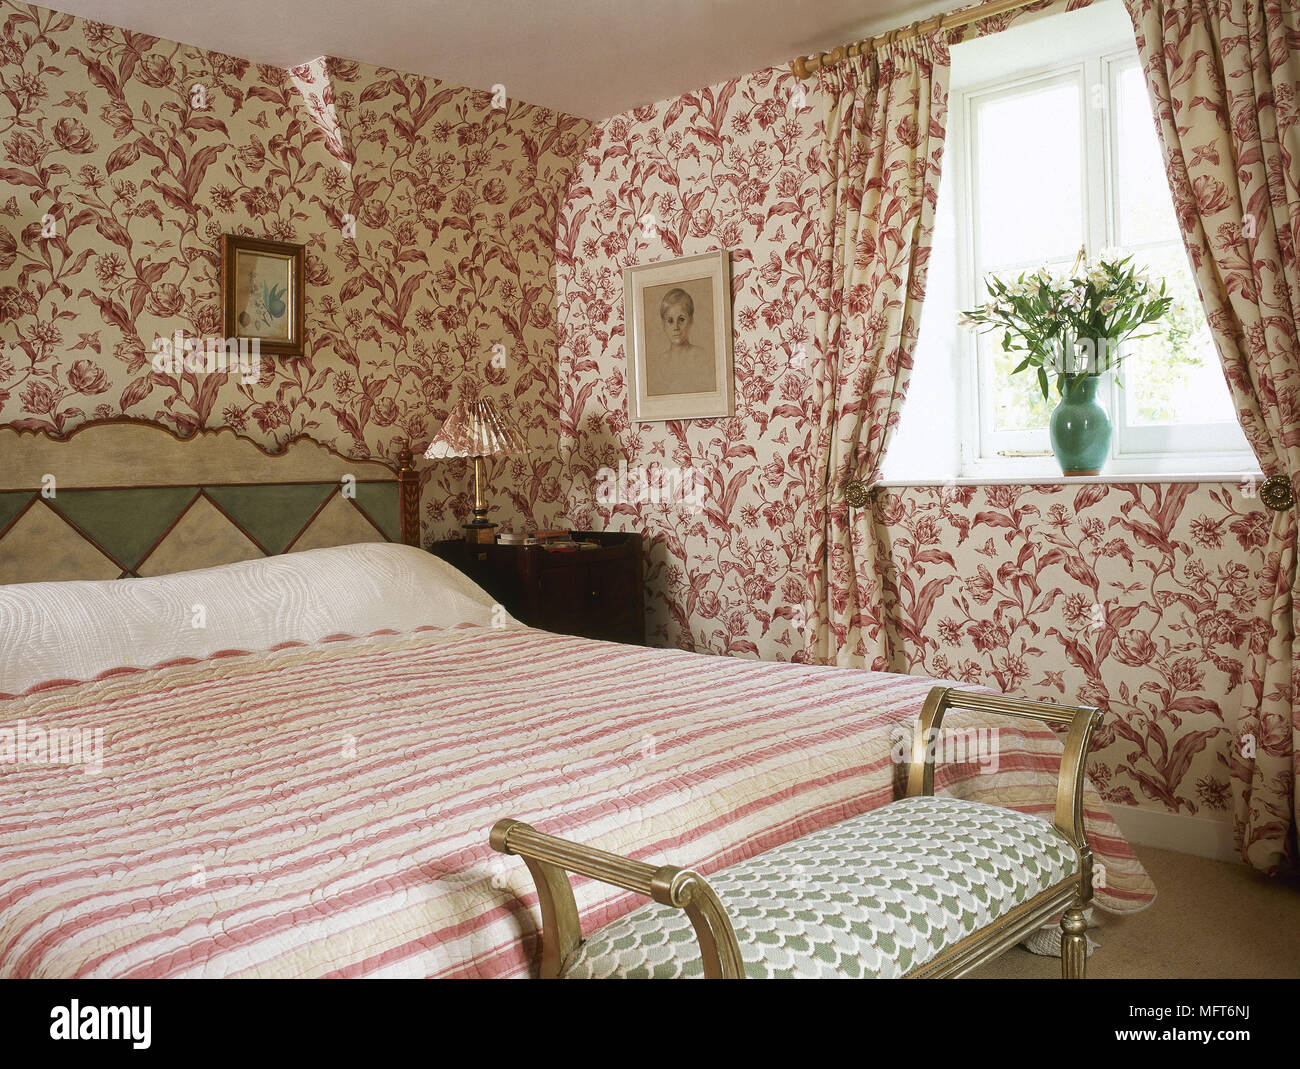 Bedroom with patterned wallpaper and coordinating curtains - Stock Image